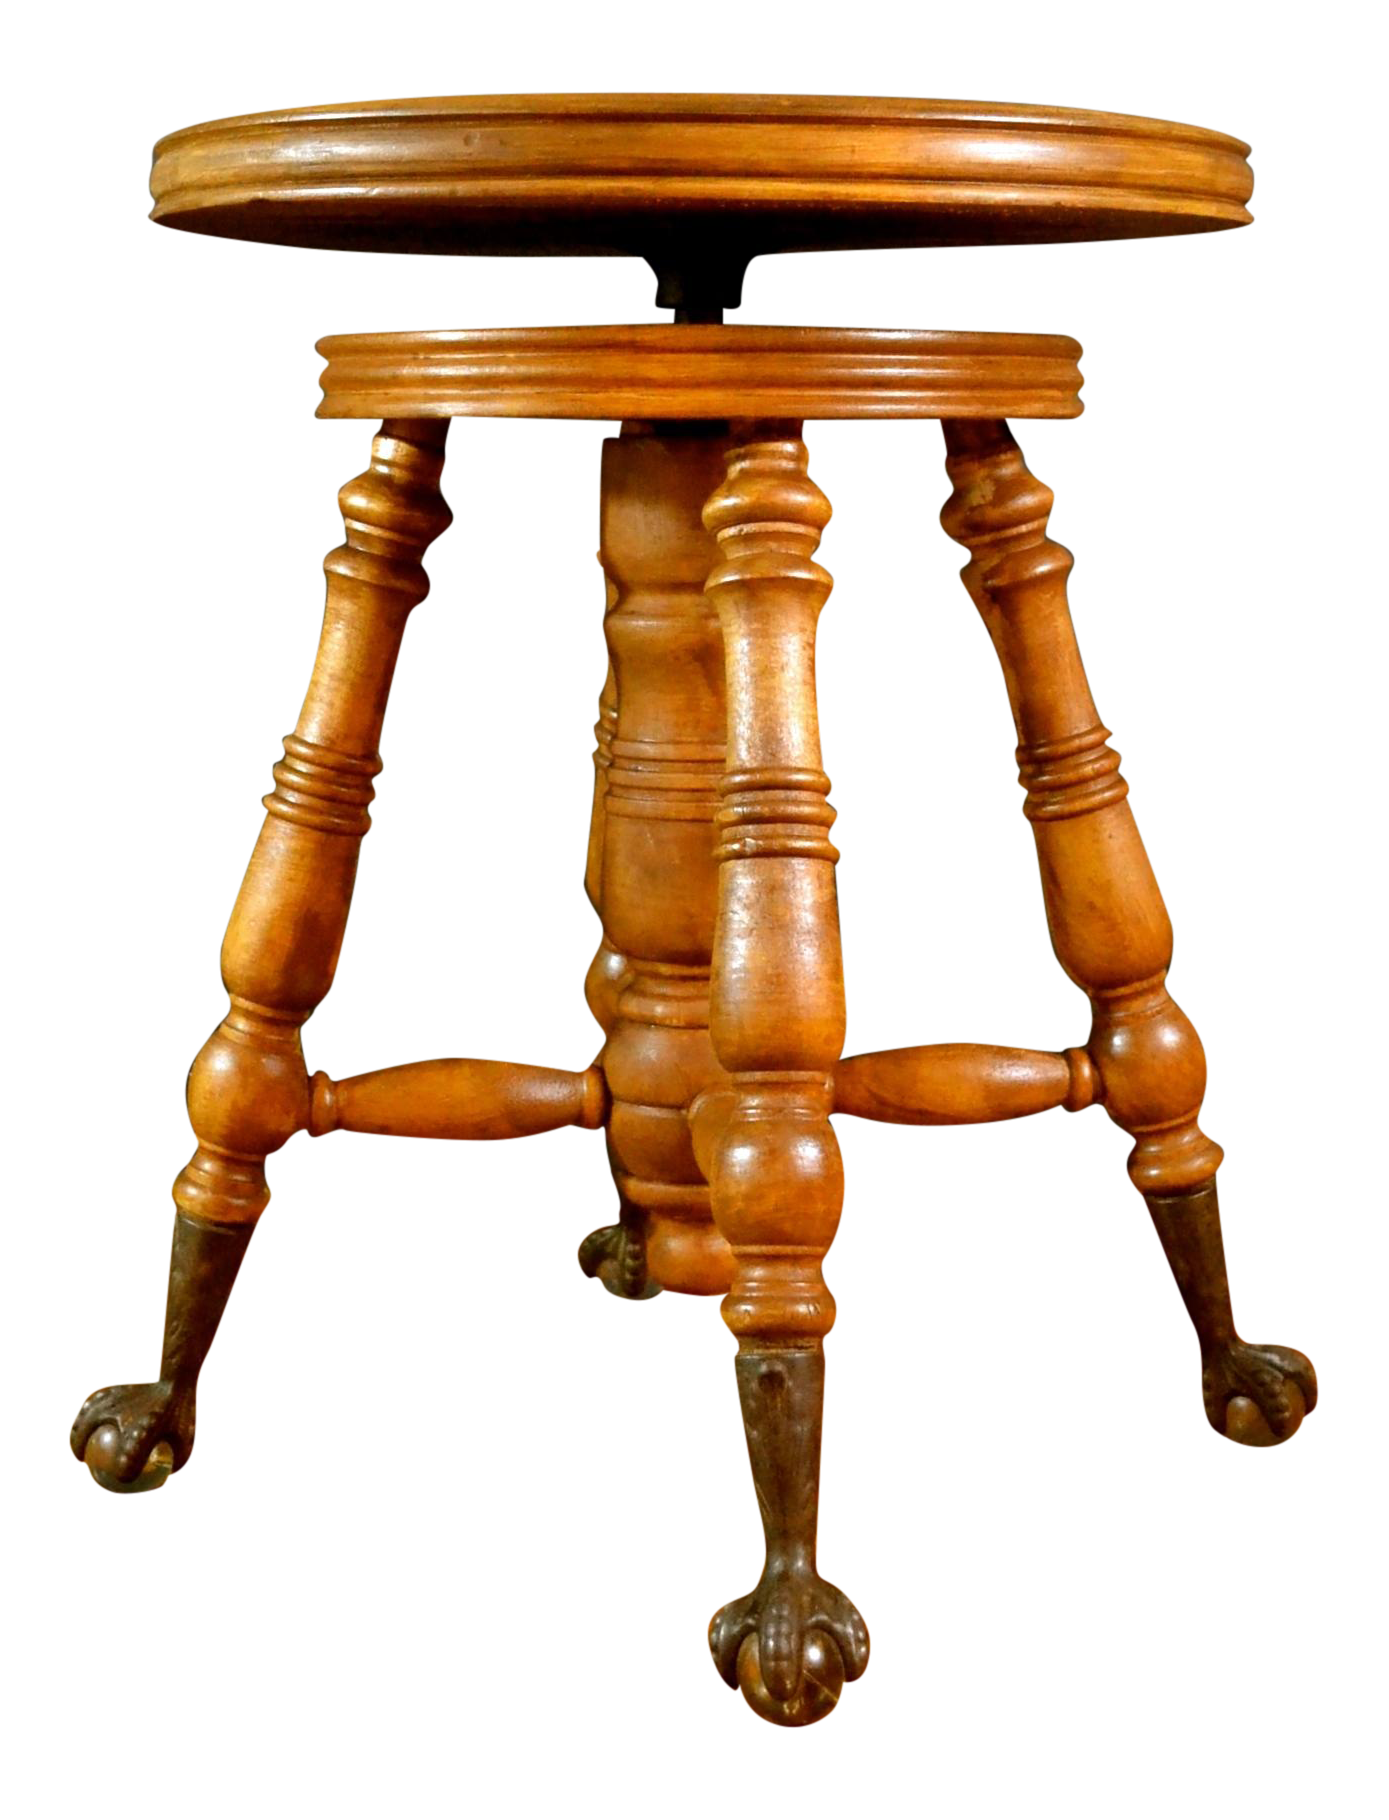 sc 1 st  Chairish & Antique Adjustable Claw Foot Piano Stool | Chairish islam-shia.org